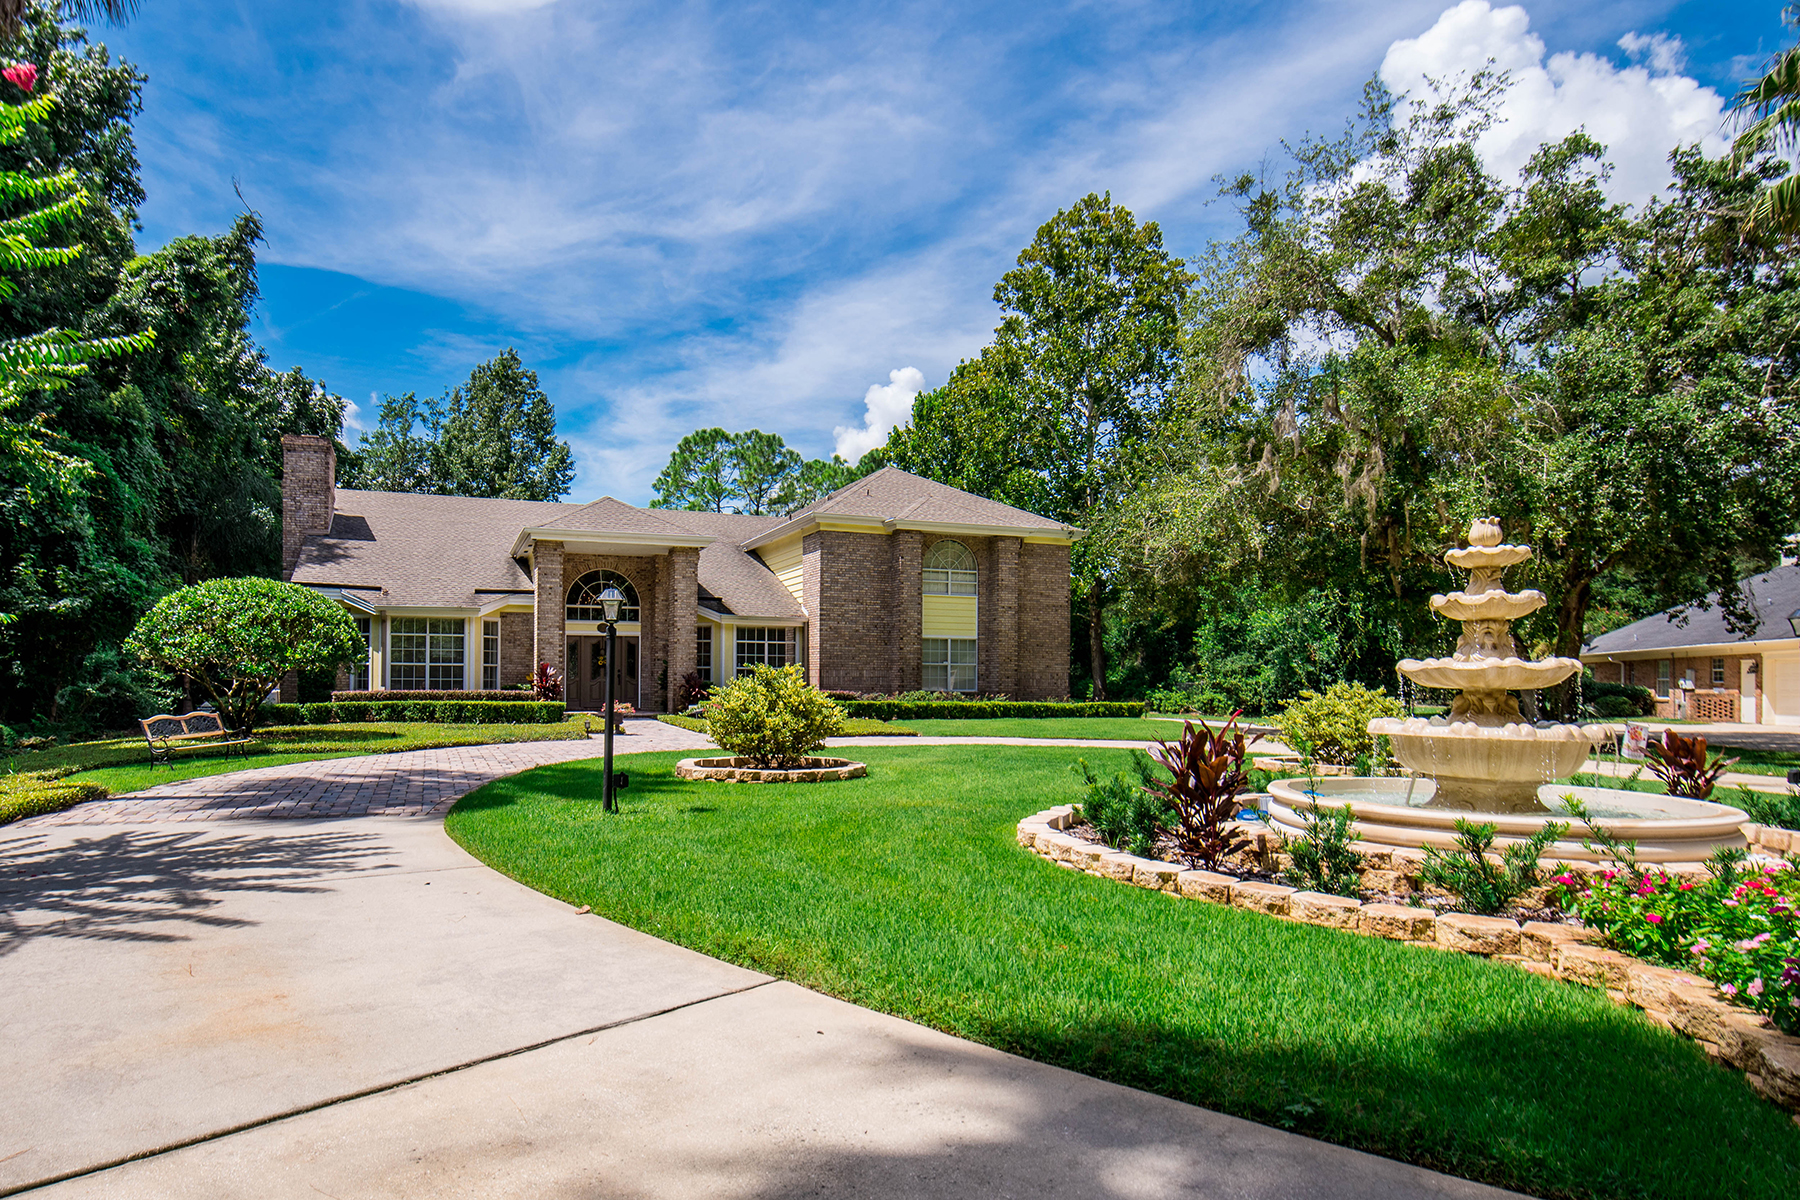 single family homes for Active at ORLANDO - LONGWOOD 962 Innswood Longwood, Florida 32779 United States